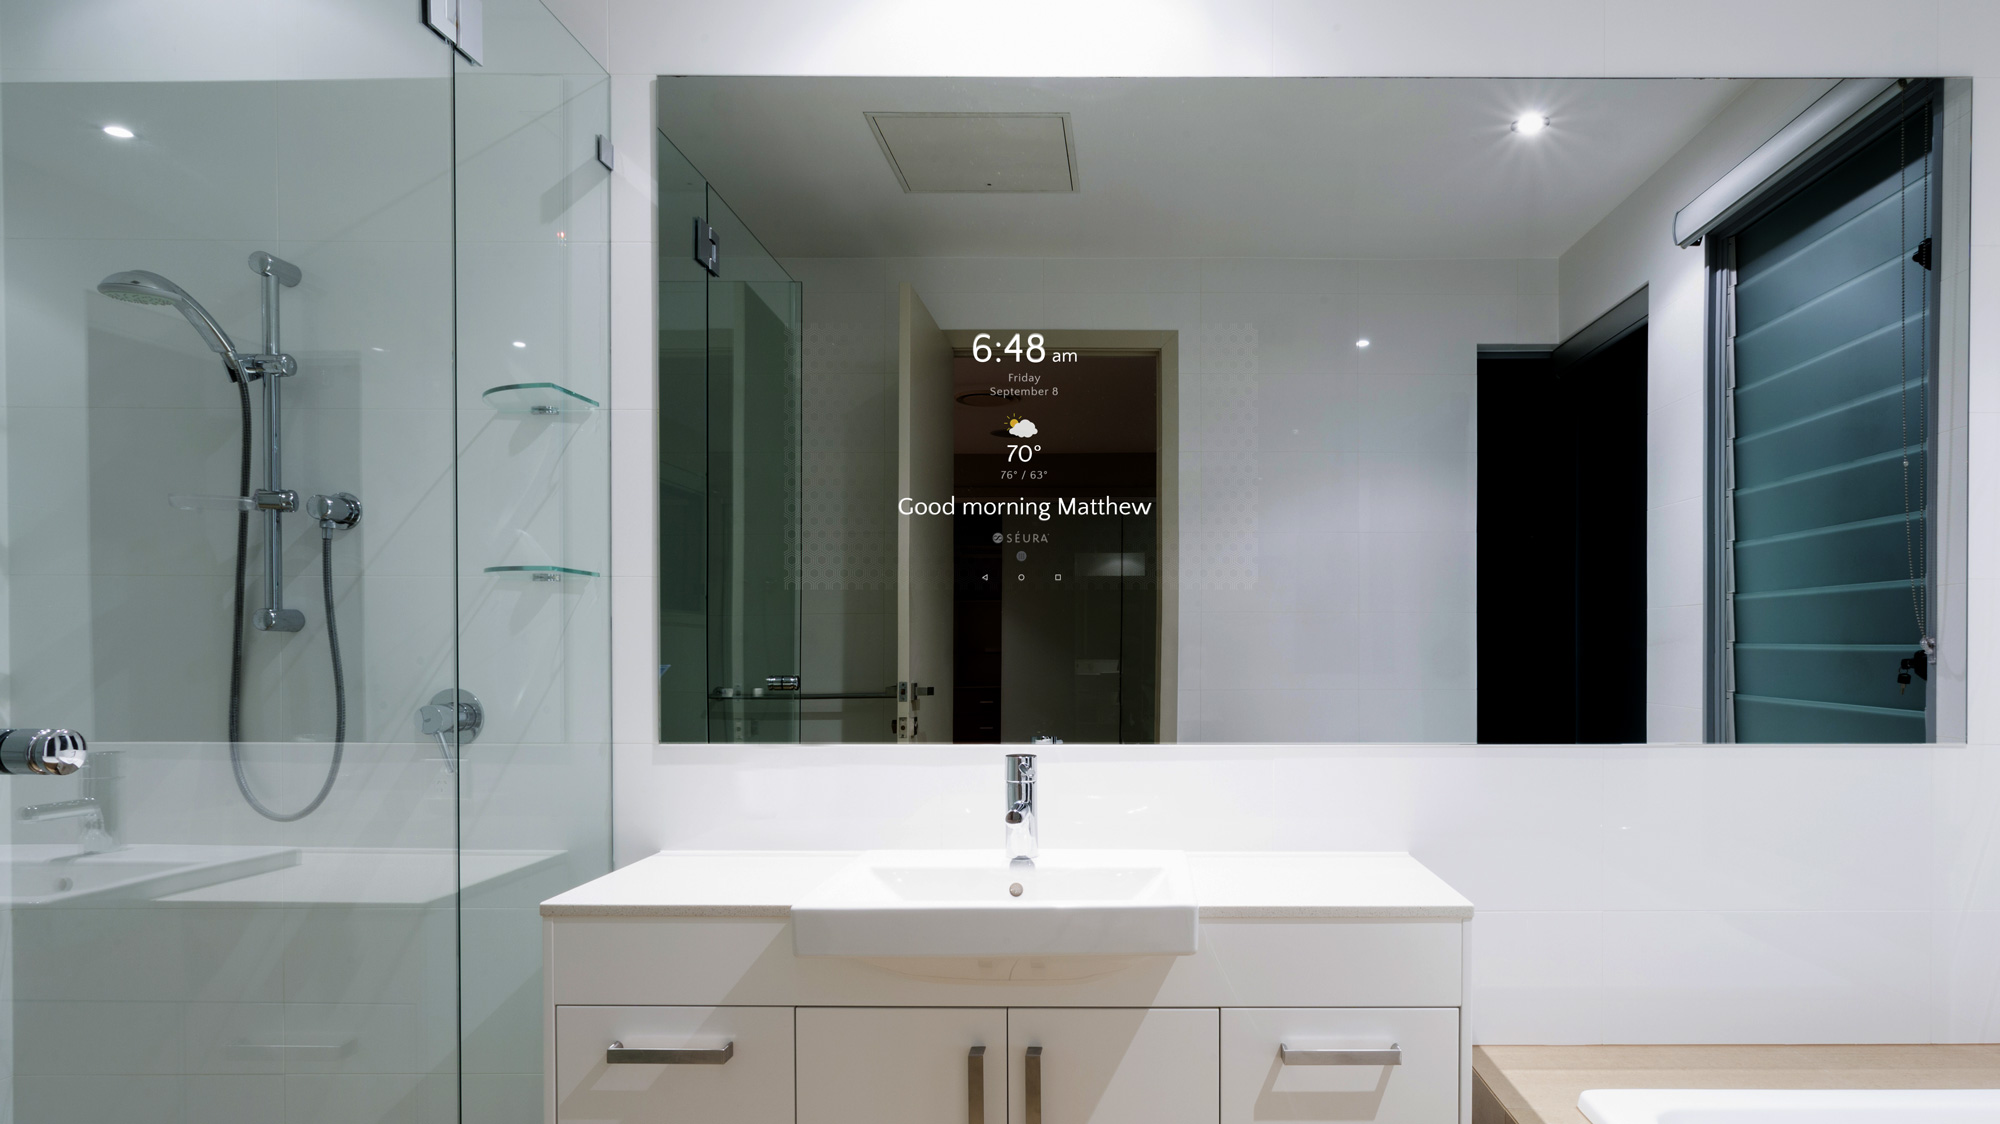 The S Ura Smart Mirror Interior Design Center Of St Louis Mo Interior Design Center Of St